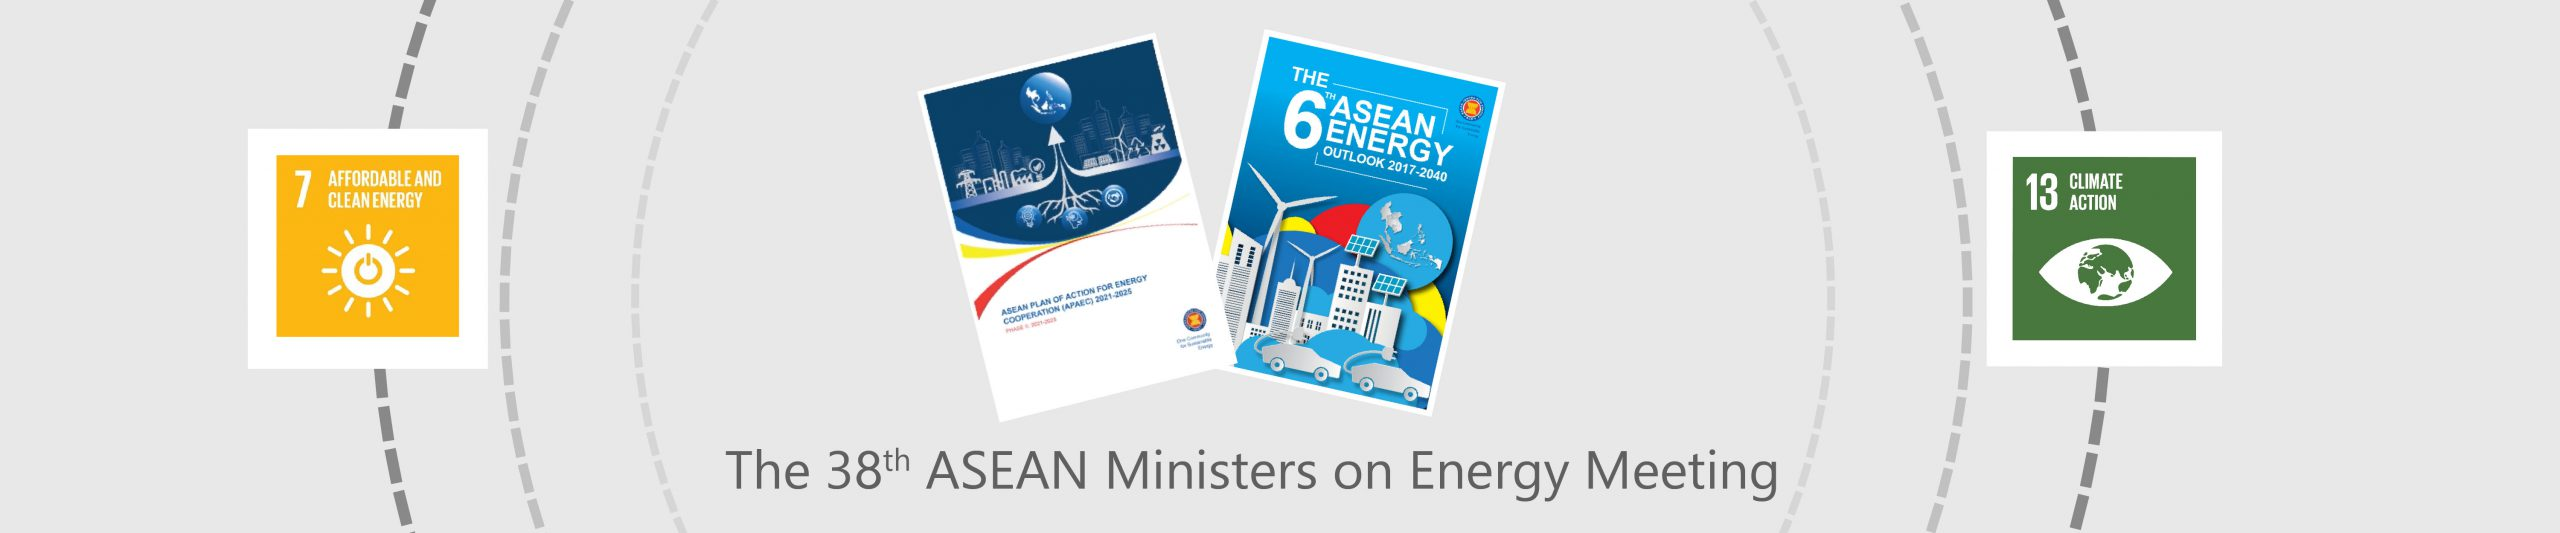 ASEAN Ministers on Energy Meeting endorsed the inclusion of energy-climate nexus in its next 5 year's ASEAN Energy Plan and Outlook